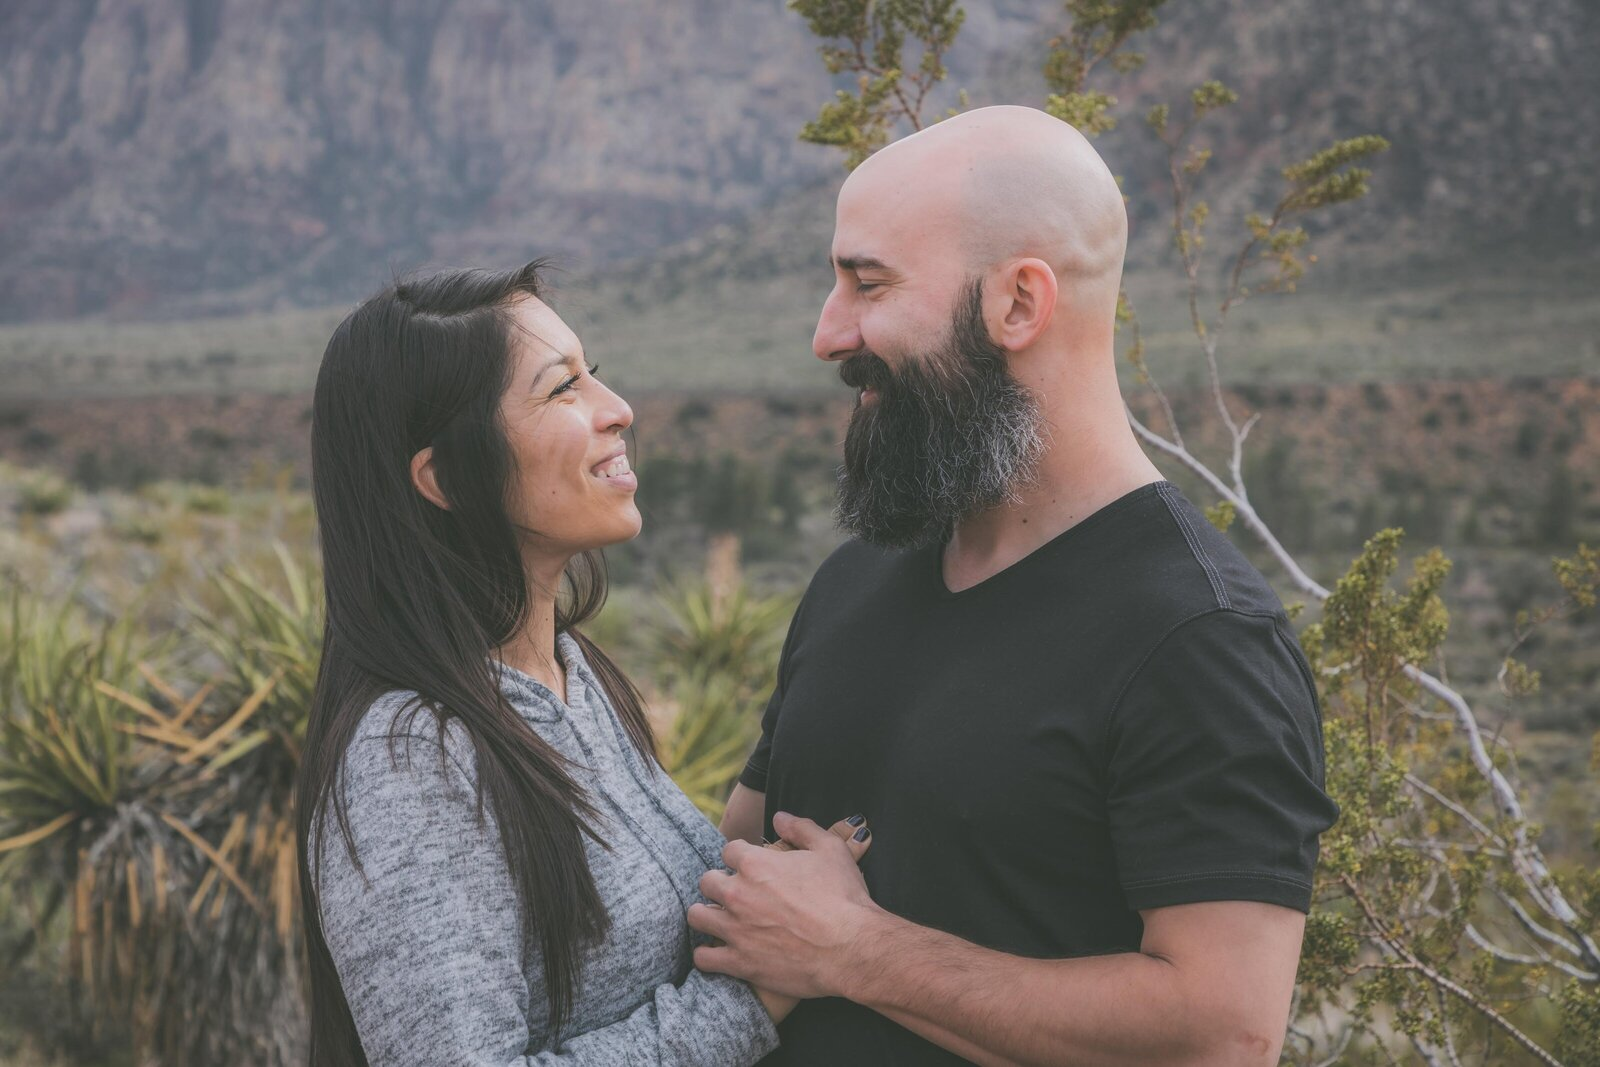 Woman and man hold hands and smile in a desert setting.